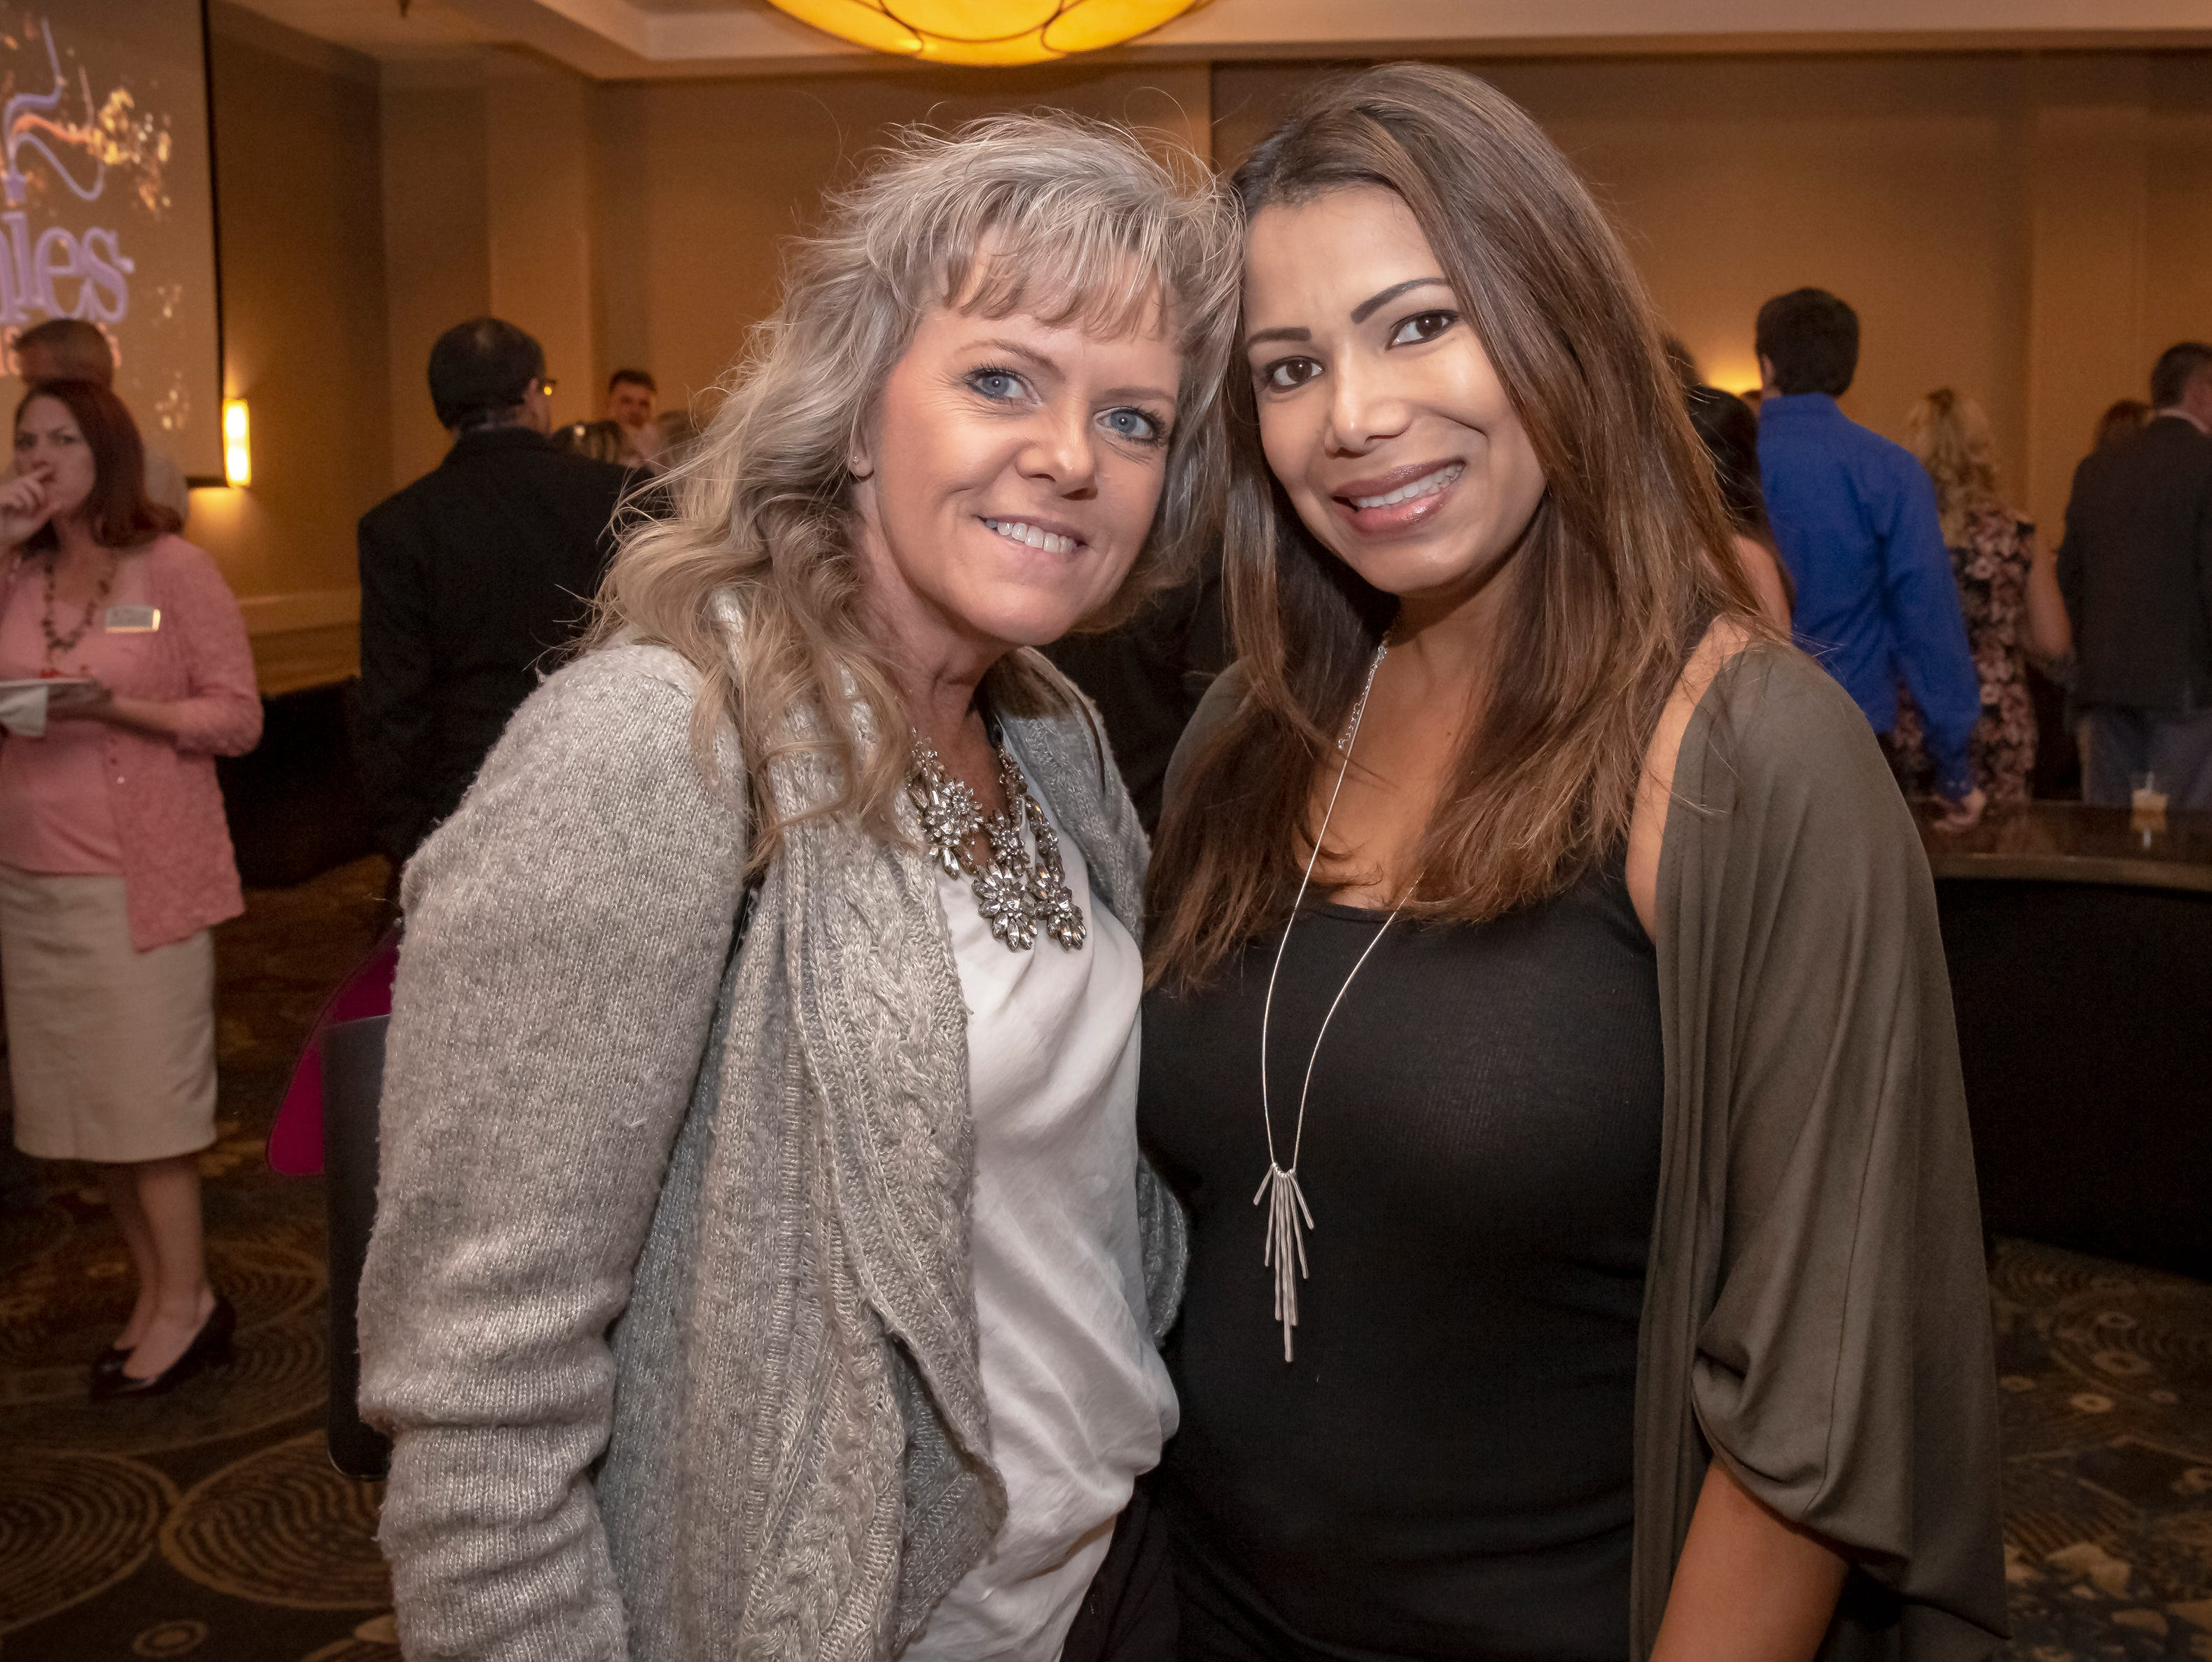 Susan Arrington and Miriam Miller at the 24th annual Ruthie awards held at DoubleTree on Old Fort Parkway.